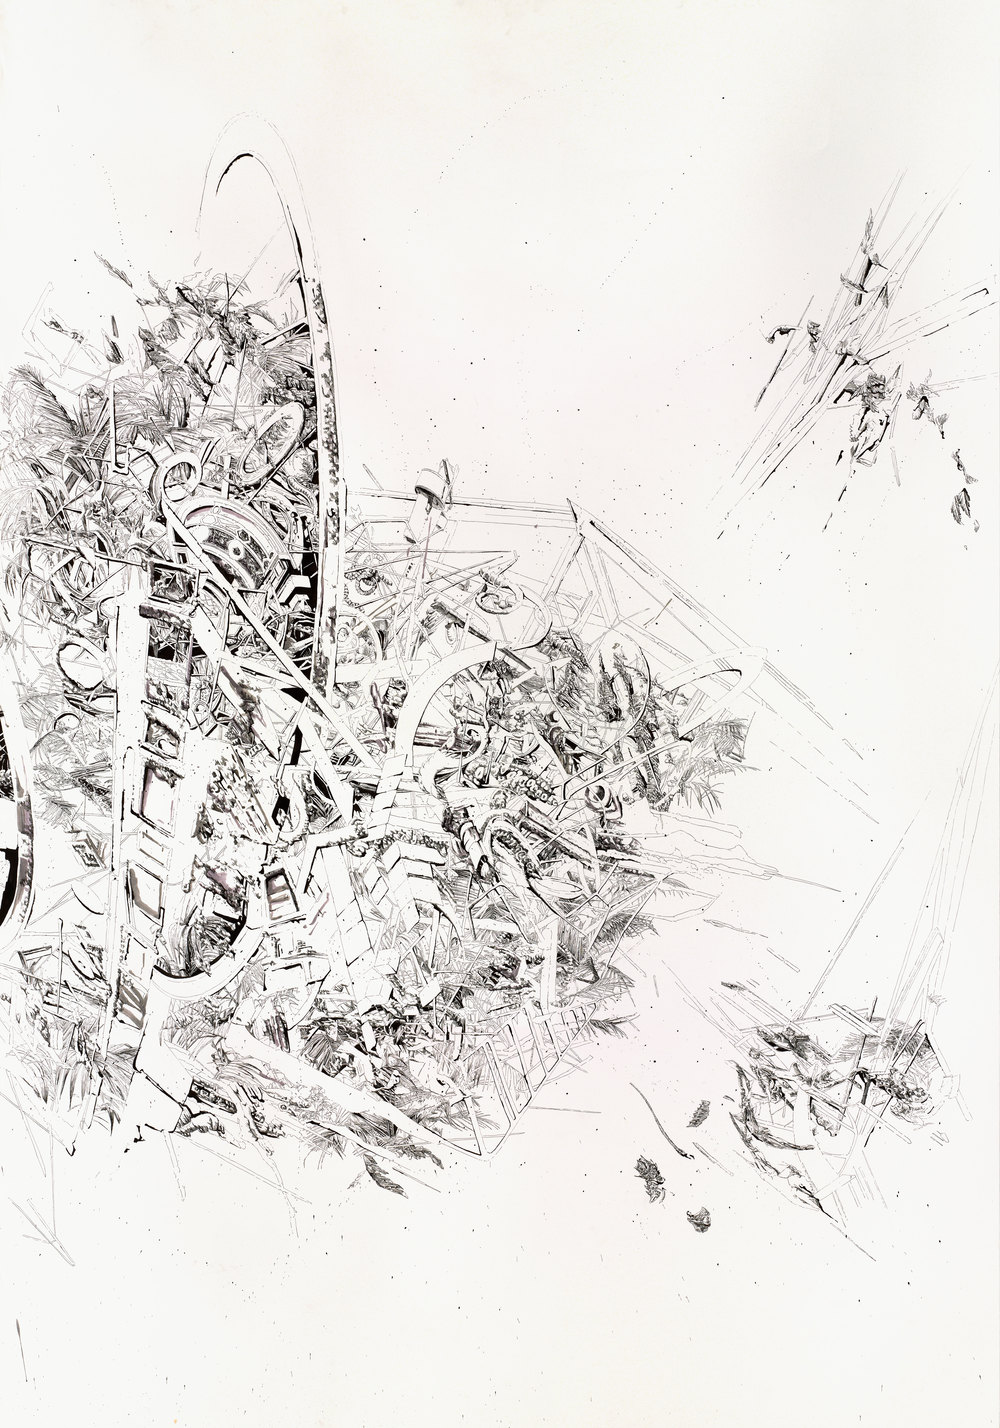 Bettina Krieg | Pxxx Untitled | Triptych C | Ink & Graphit on Paper | 270x190cm | 2012